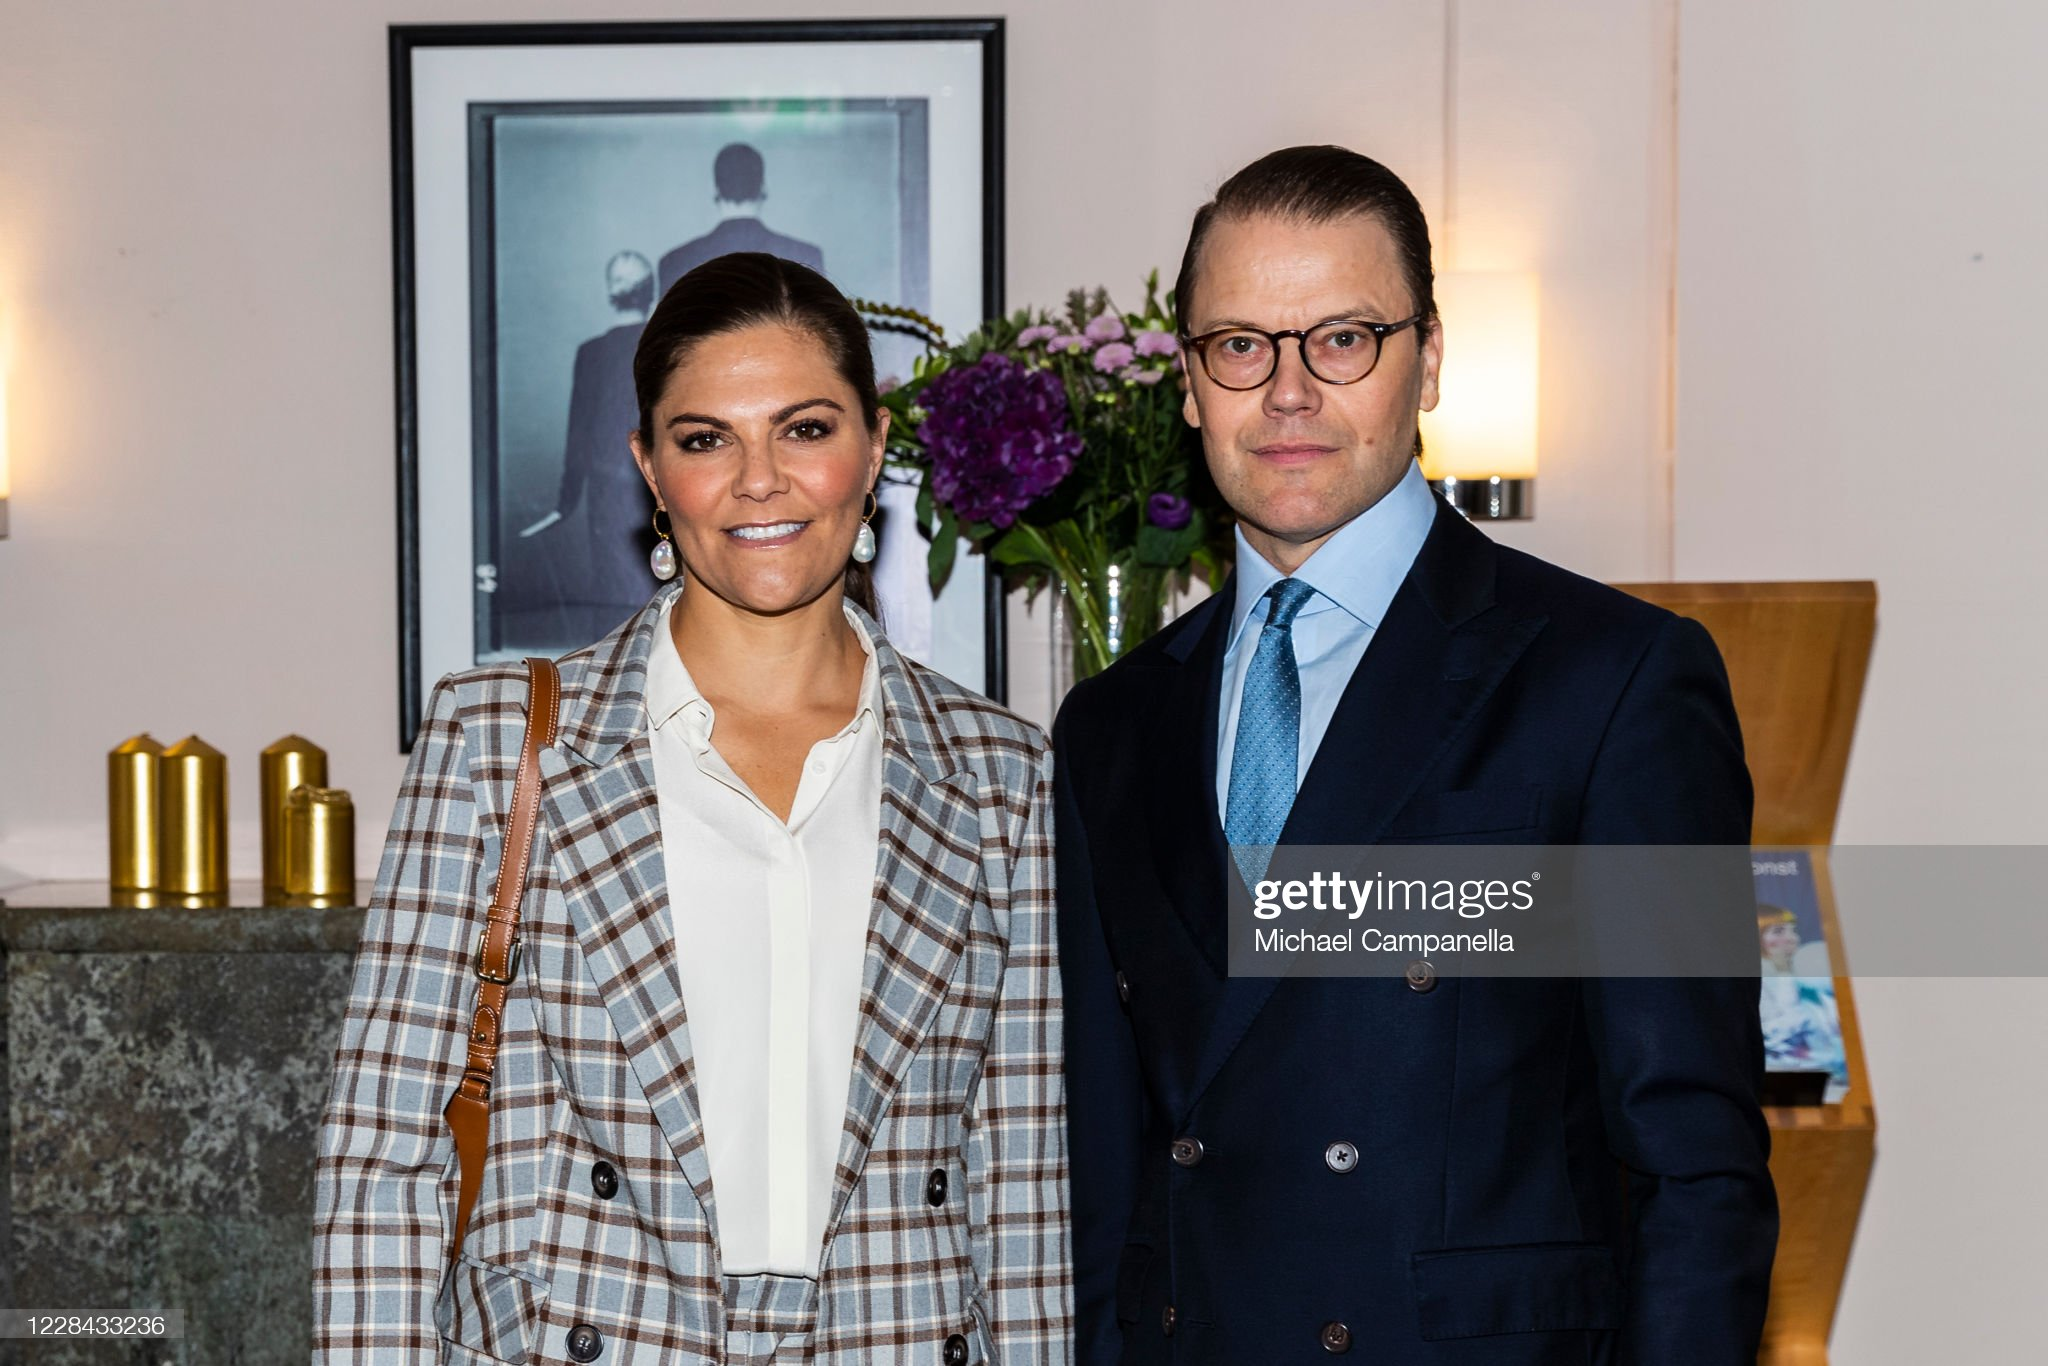 crown-princess-victoria-and-prince-daniel-of-sweden-visit-the-swedish-picture-id1228433236